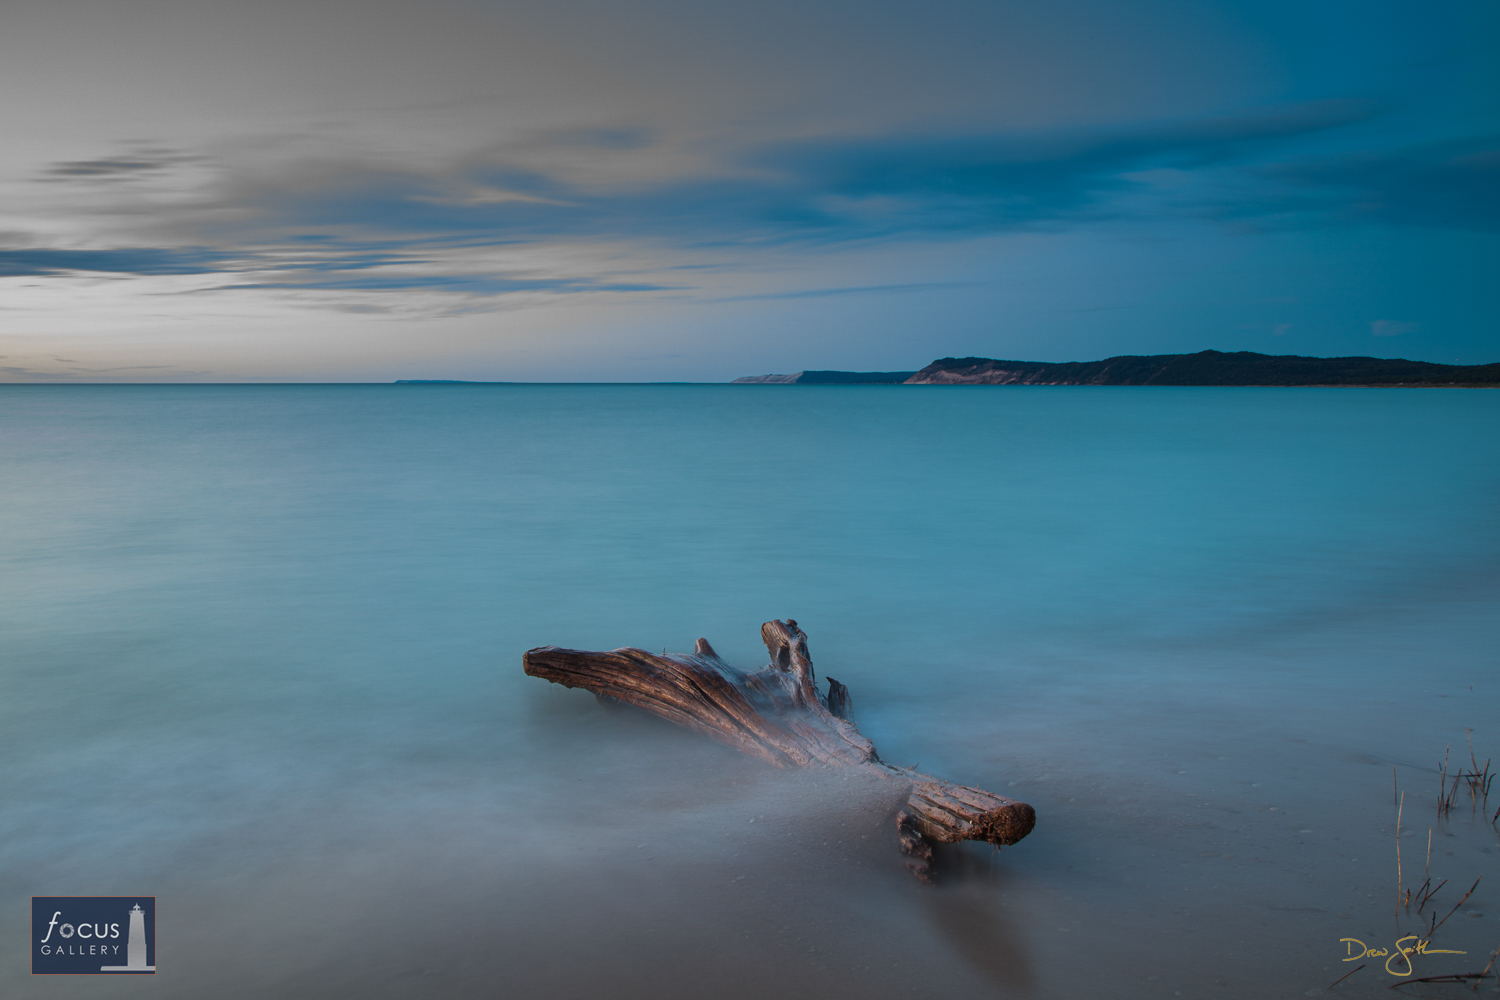 Photo © Drew Smith A driftwood log lays partially buried in the sand along Lake Michigan at Platte River Point. I used a long...